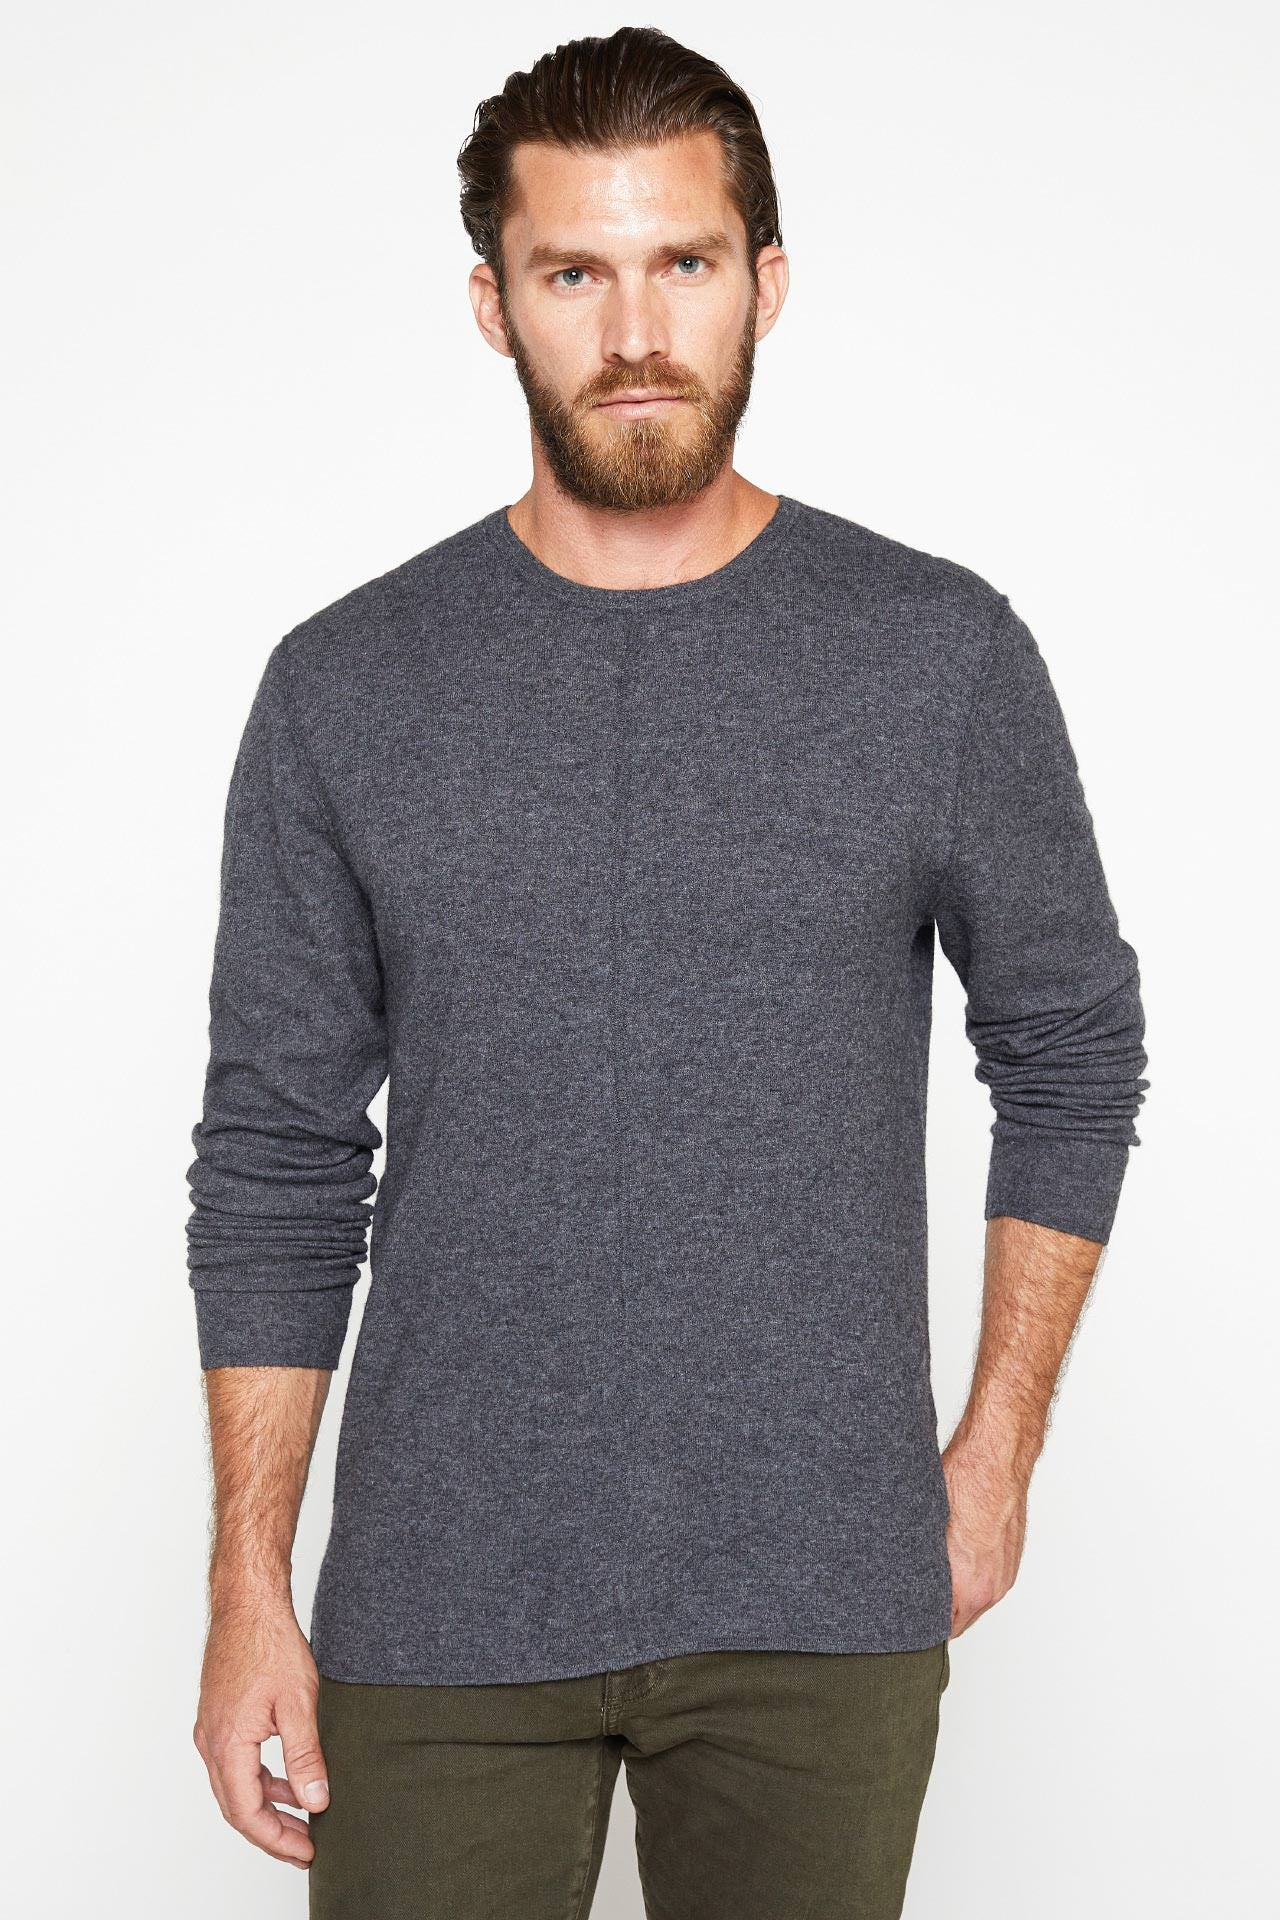 The Emmett Sweater In Charcoal